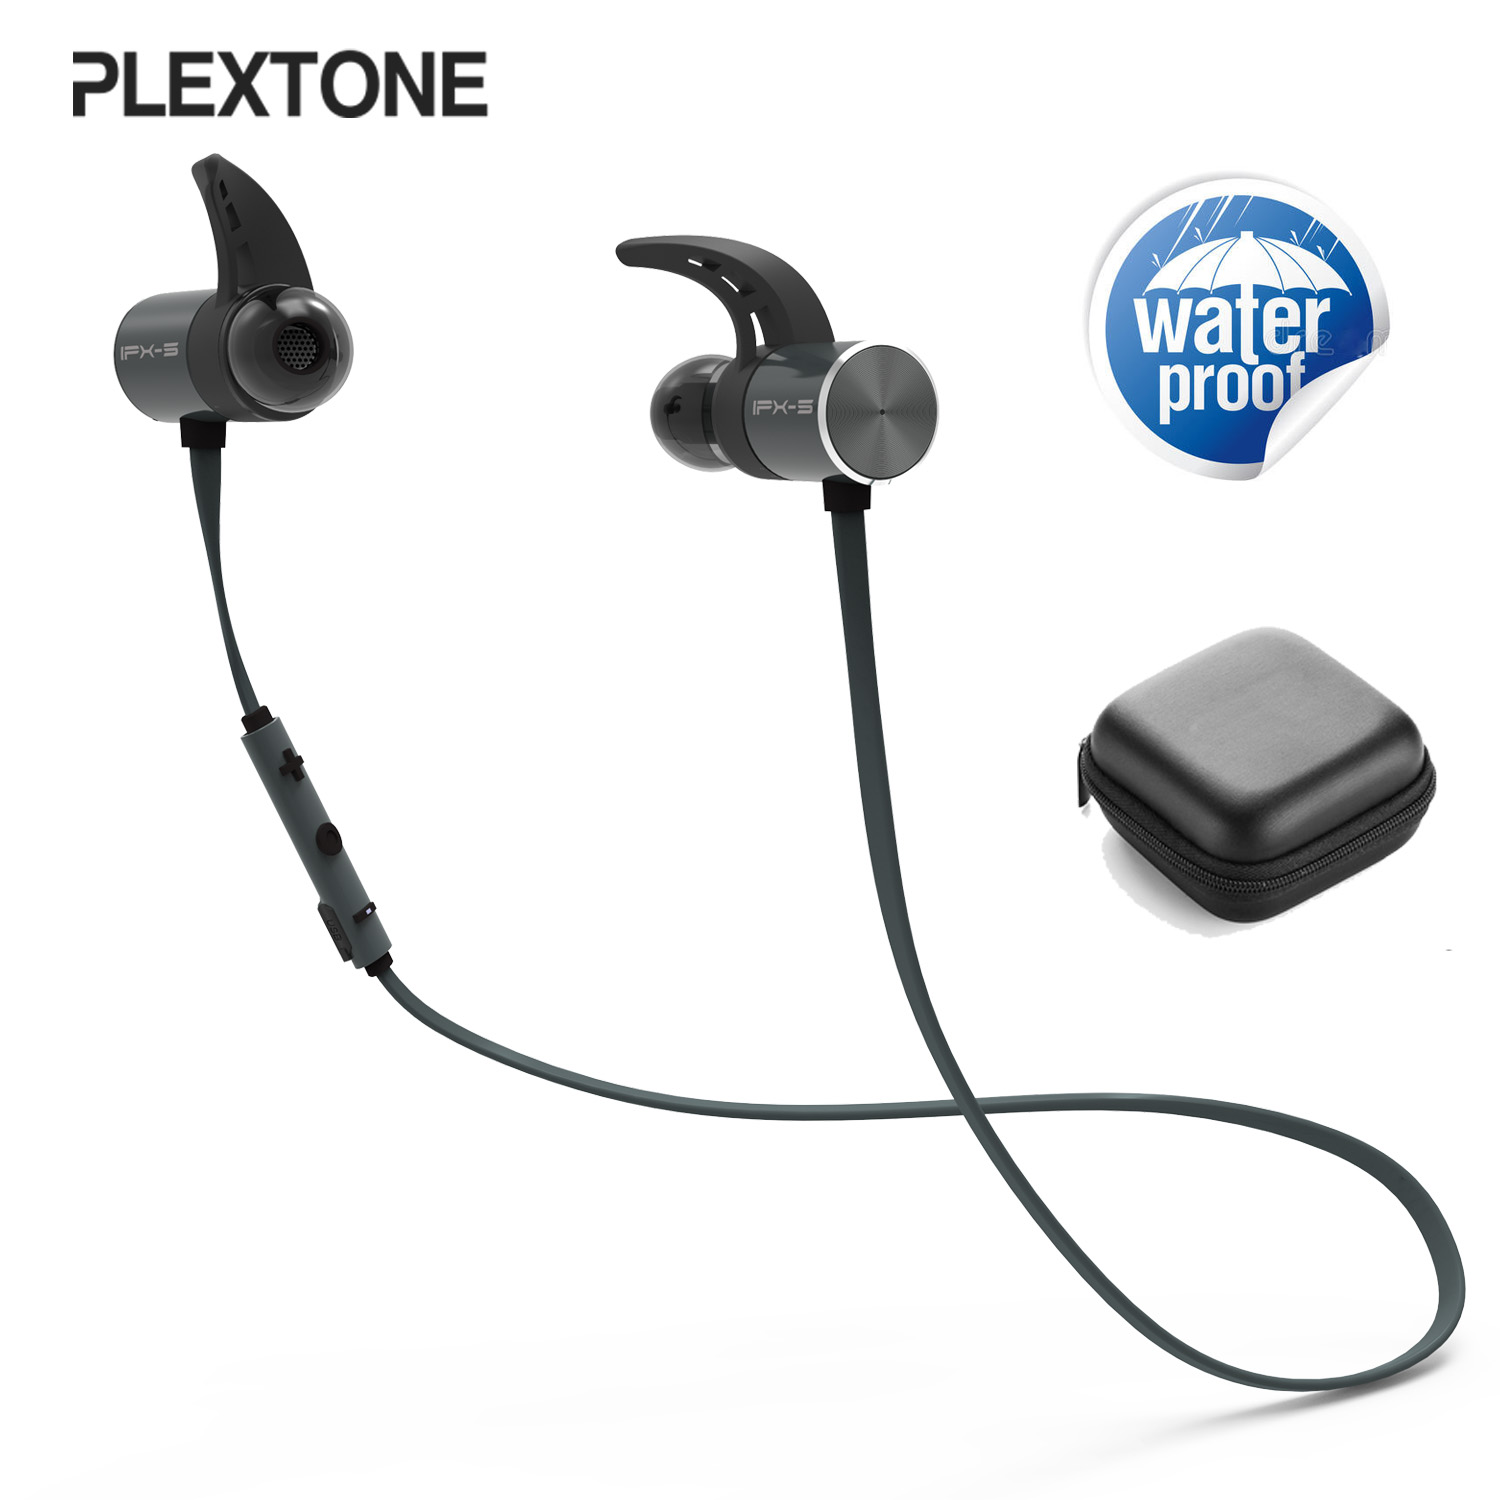 BX343 Bluetooth Earphone Wireless Headphone IPX5 Waterproof HIFI Stereo Earbuds Magnetic Headset With Microphone For phone Sport free shipping wireless bluetooth headset sports headphone earphone stereo earbuds earpiece with microphone for phone